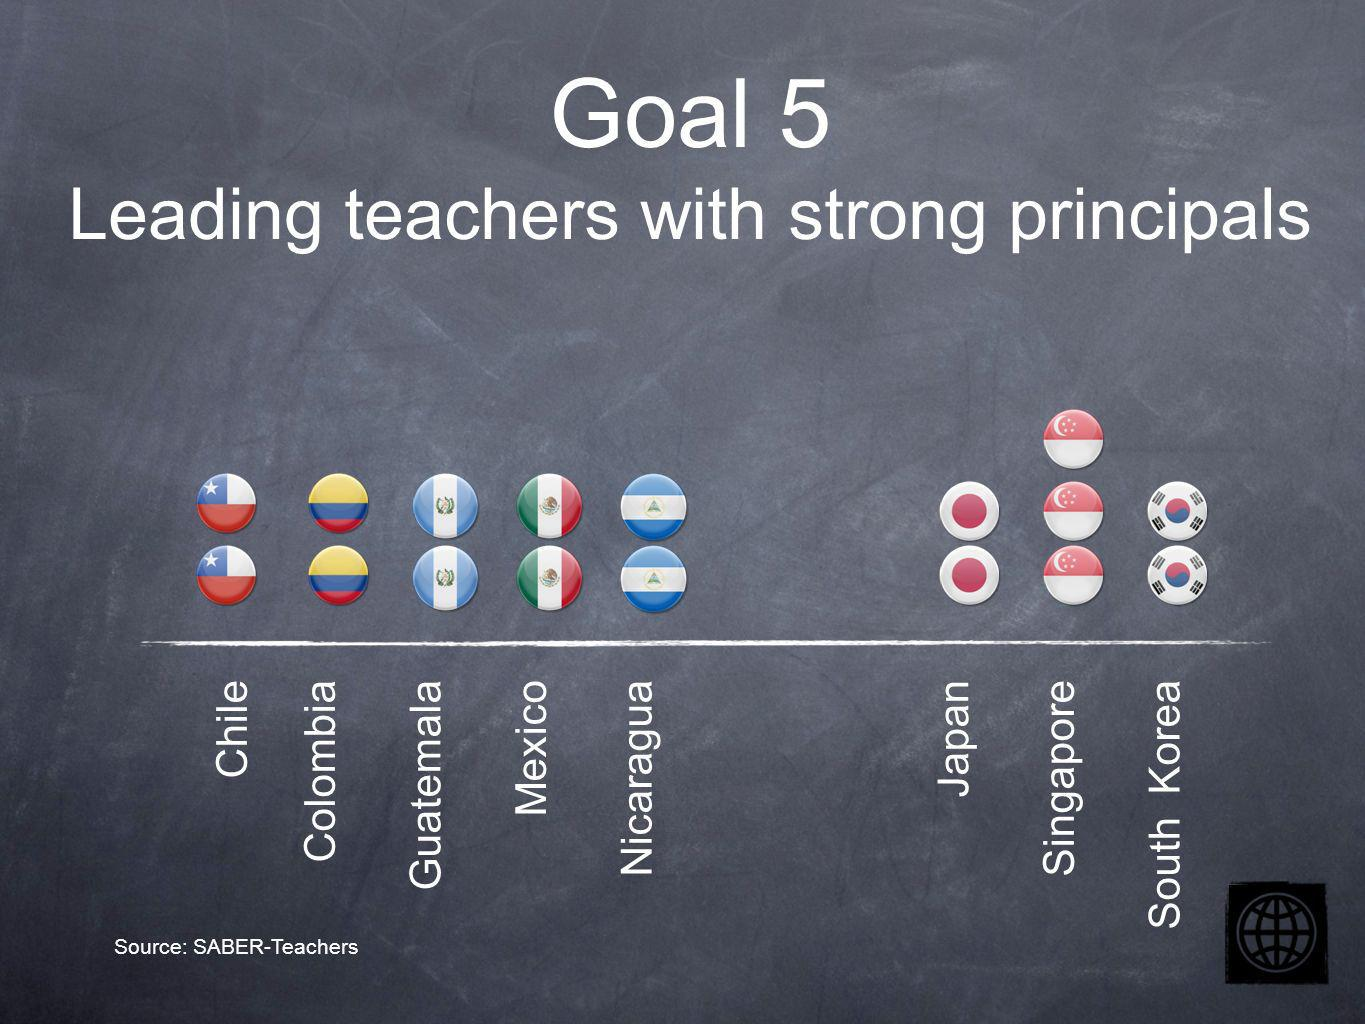 Chile Colombia Guatemala Mexico Nicaragua Japan Singapore South Korea Goal 5 Leading teachers with strong principals Source: SABER-Teachers